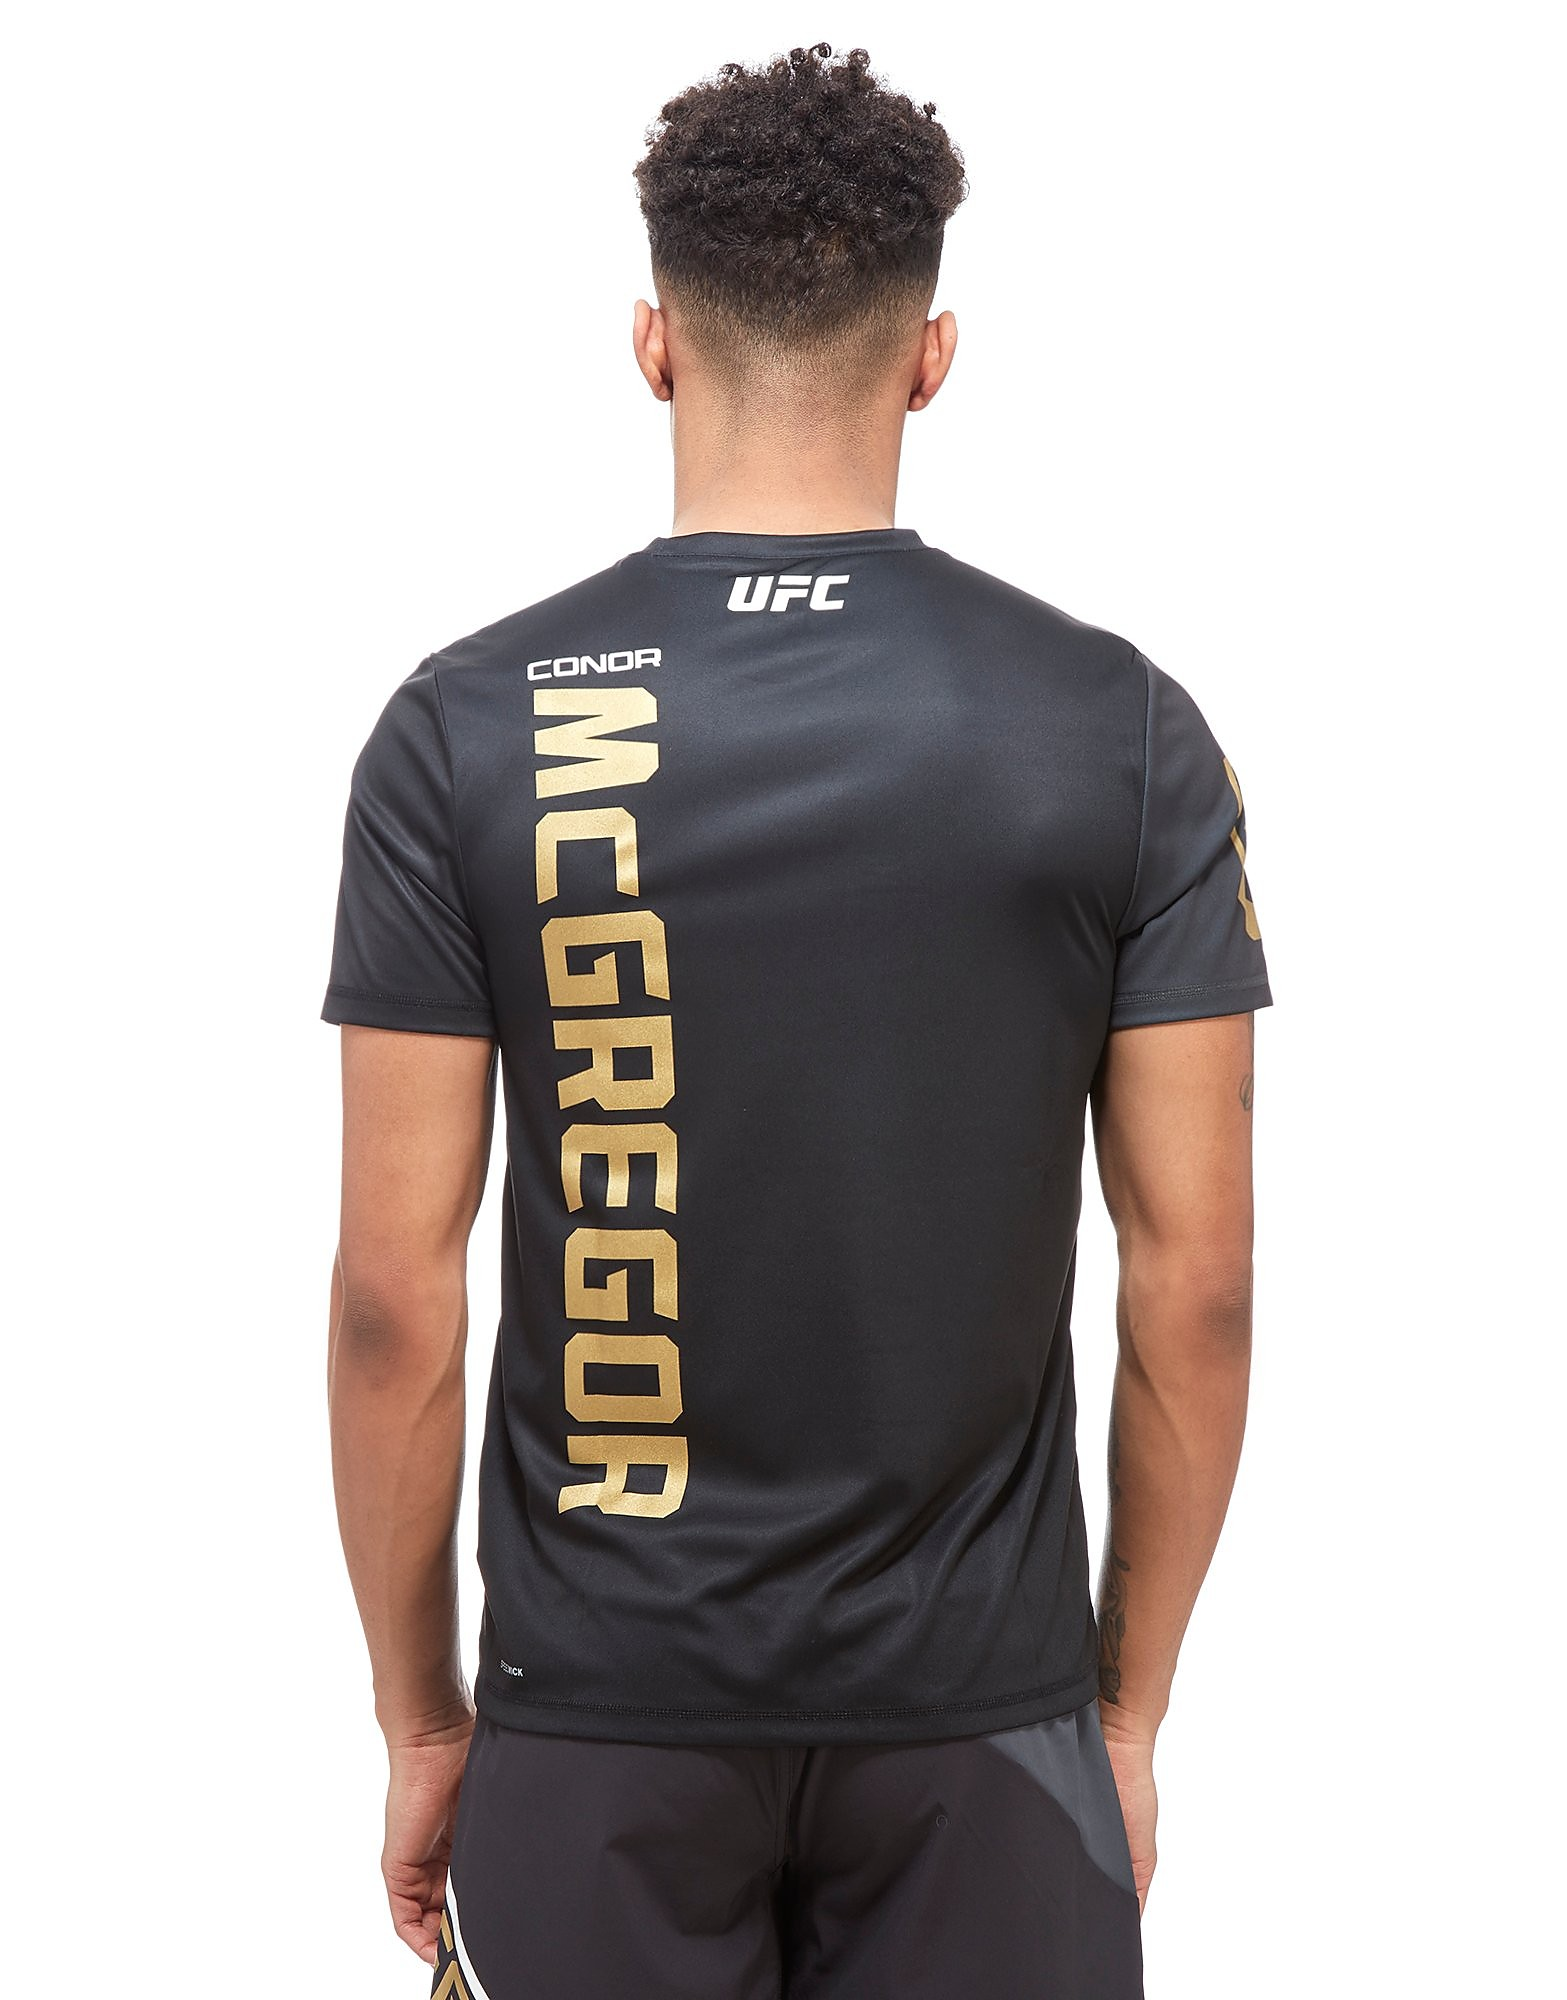 Reebok UFC Conor McGregor Walkout T-Shirt